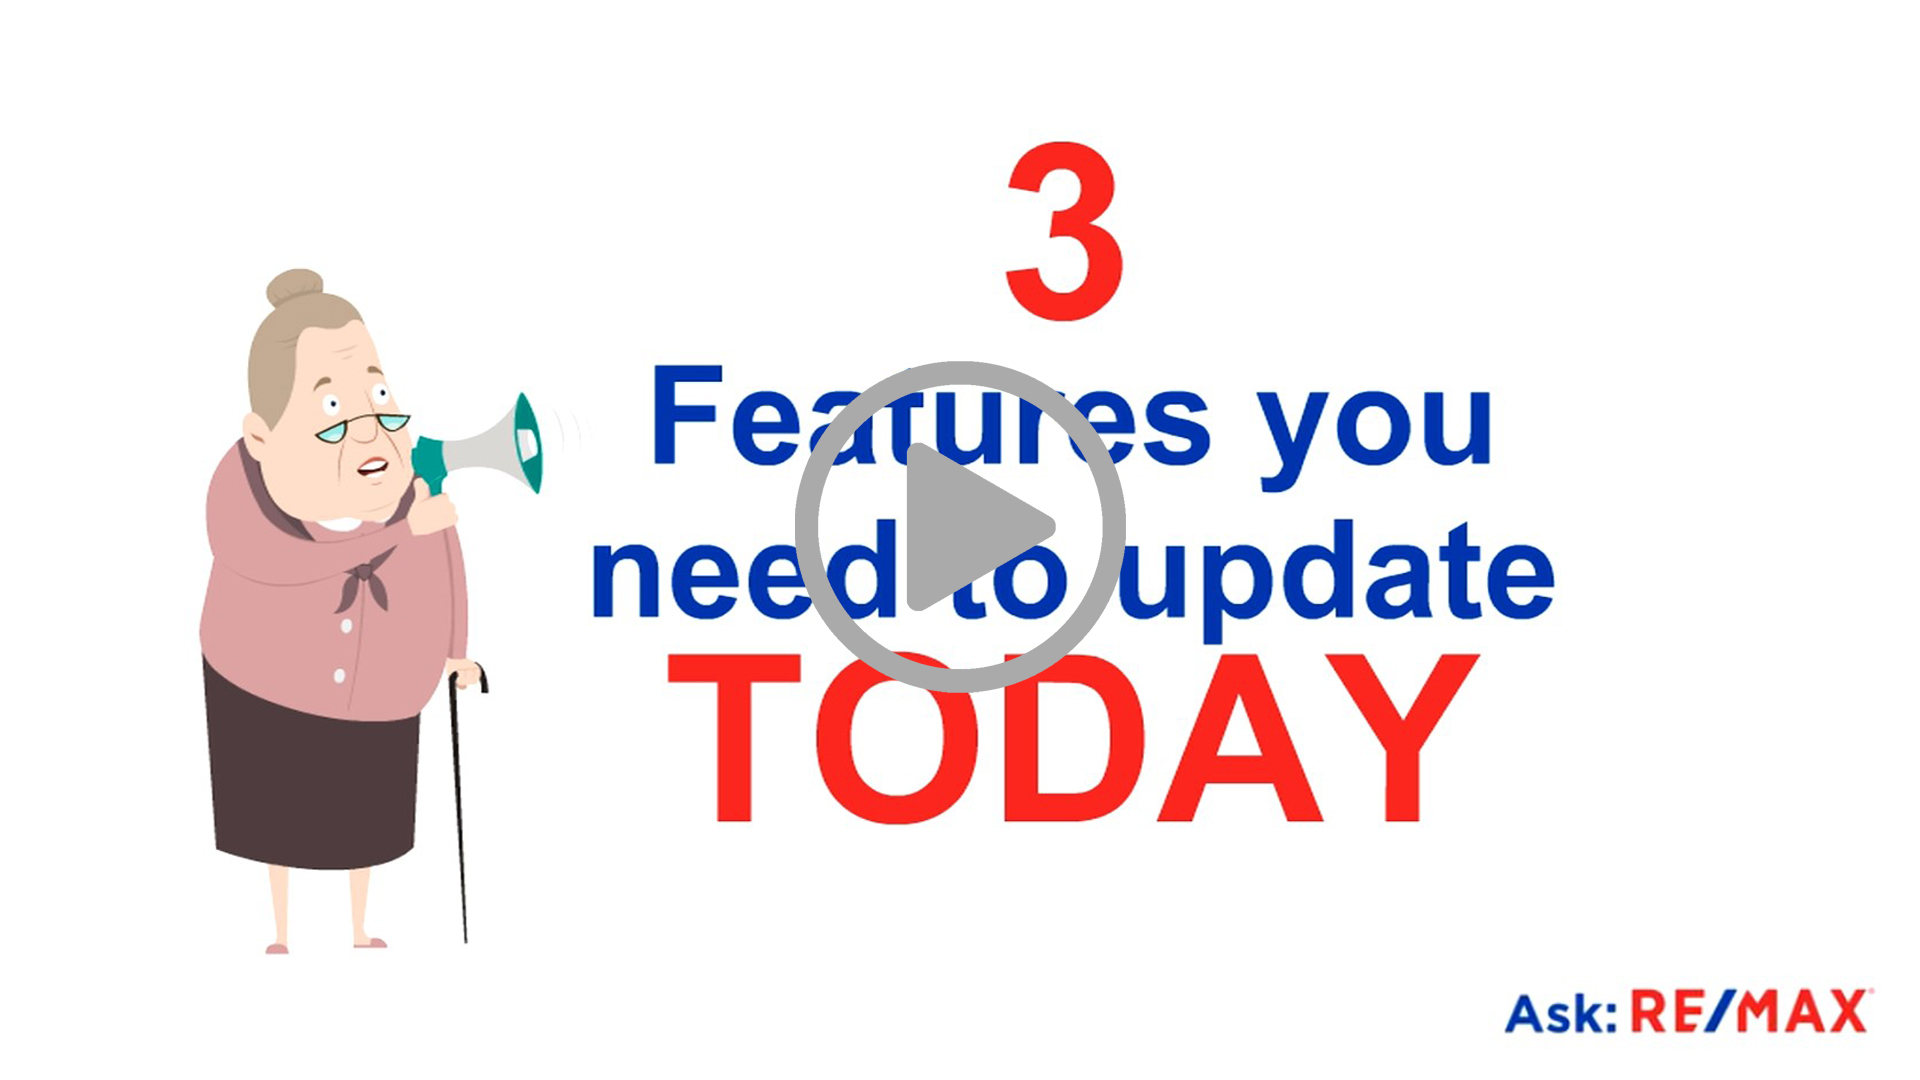 3 FEATURES YOU NEED TO UPDATE TODAY